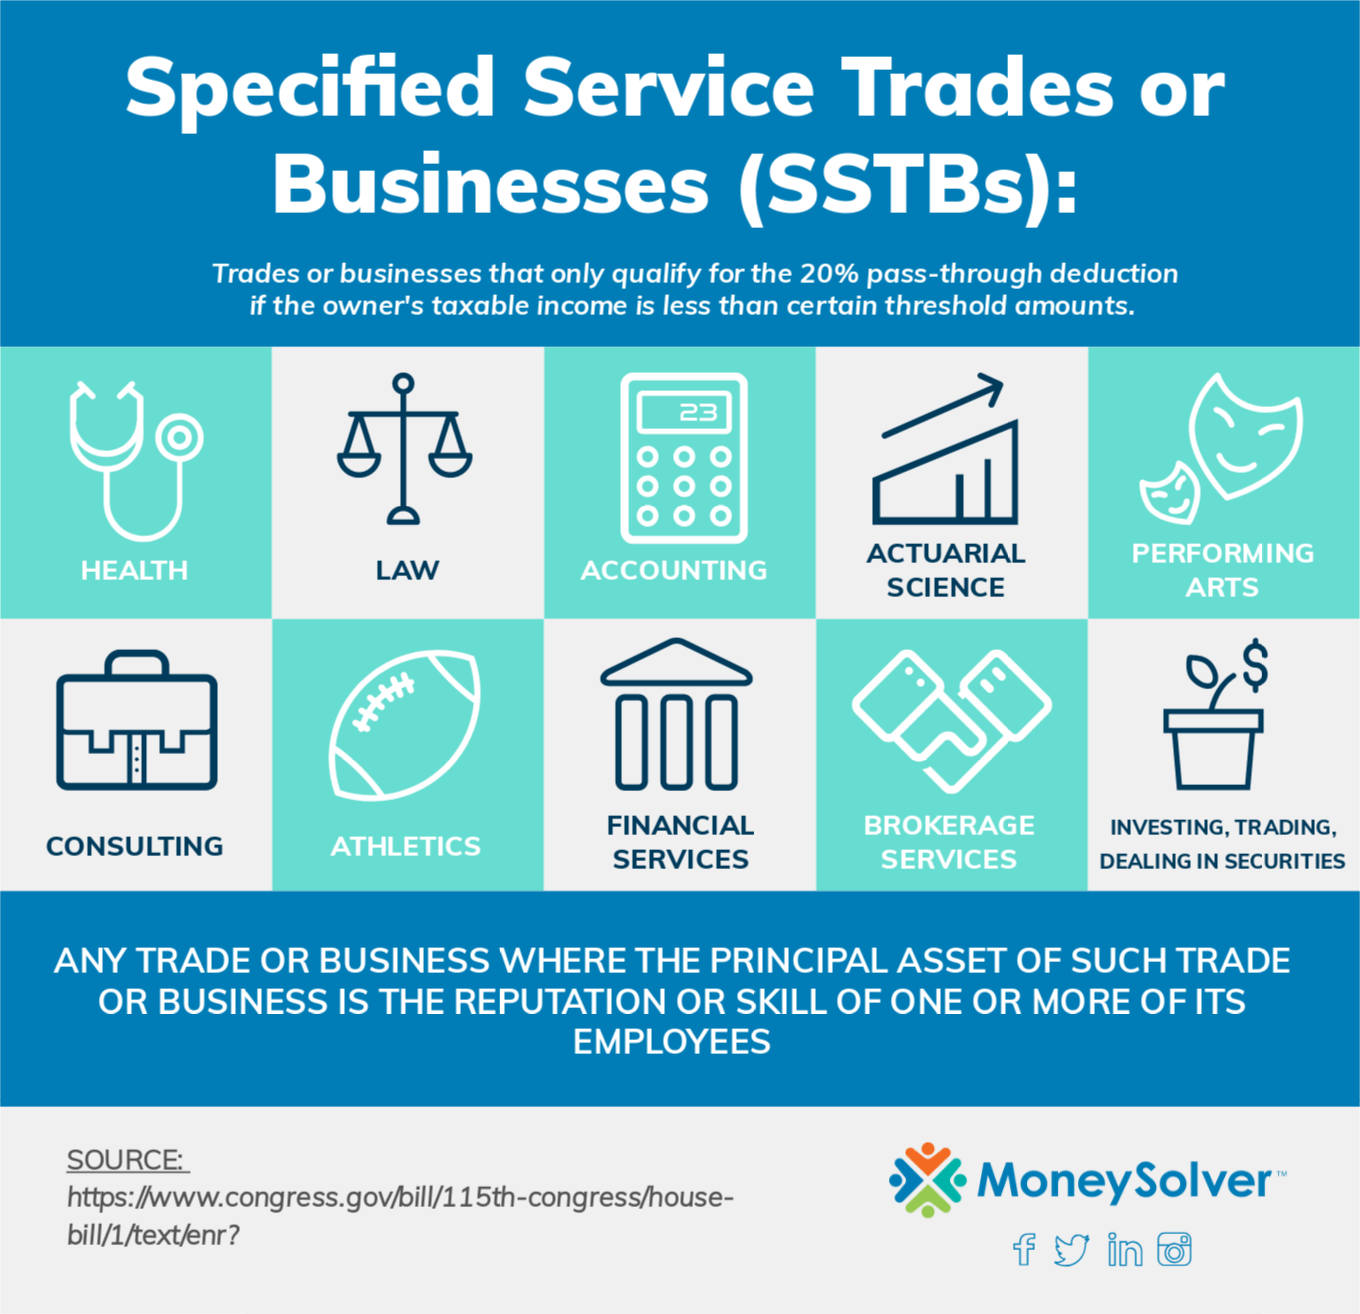 Specified Service Trades or Businesses (SSTBs) that don't qualify for the 20% pass-through deduction